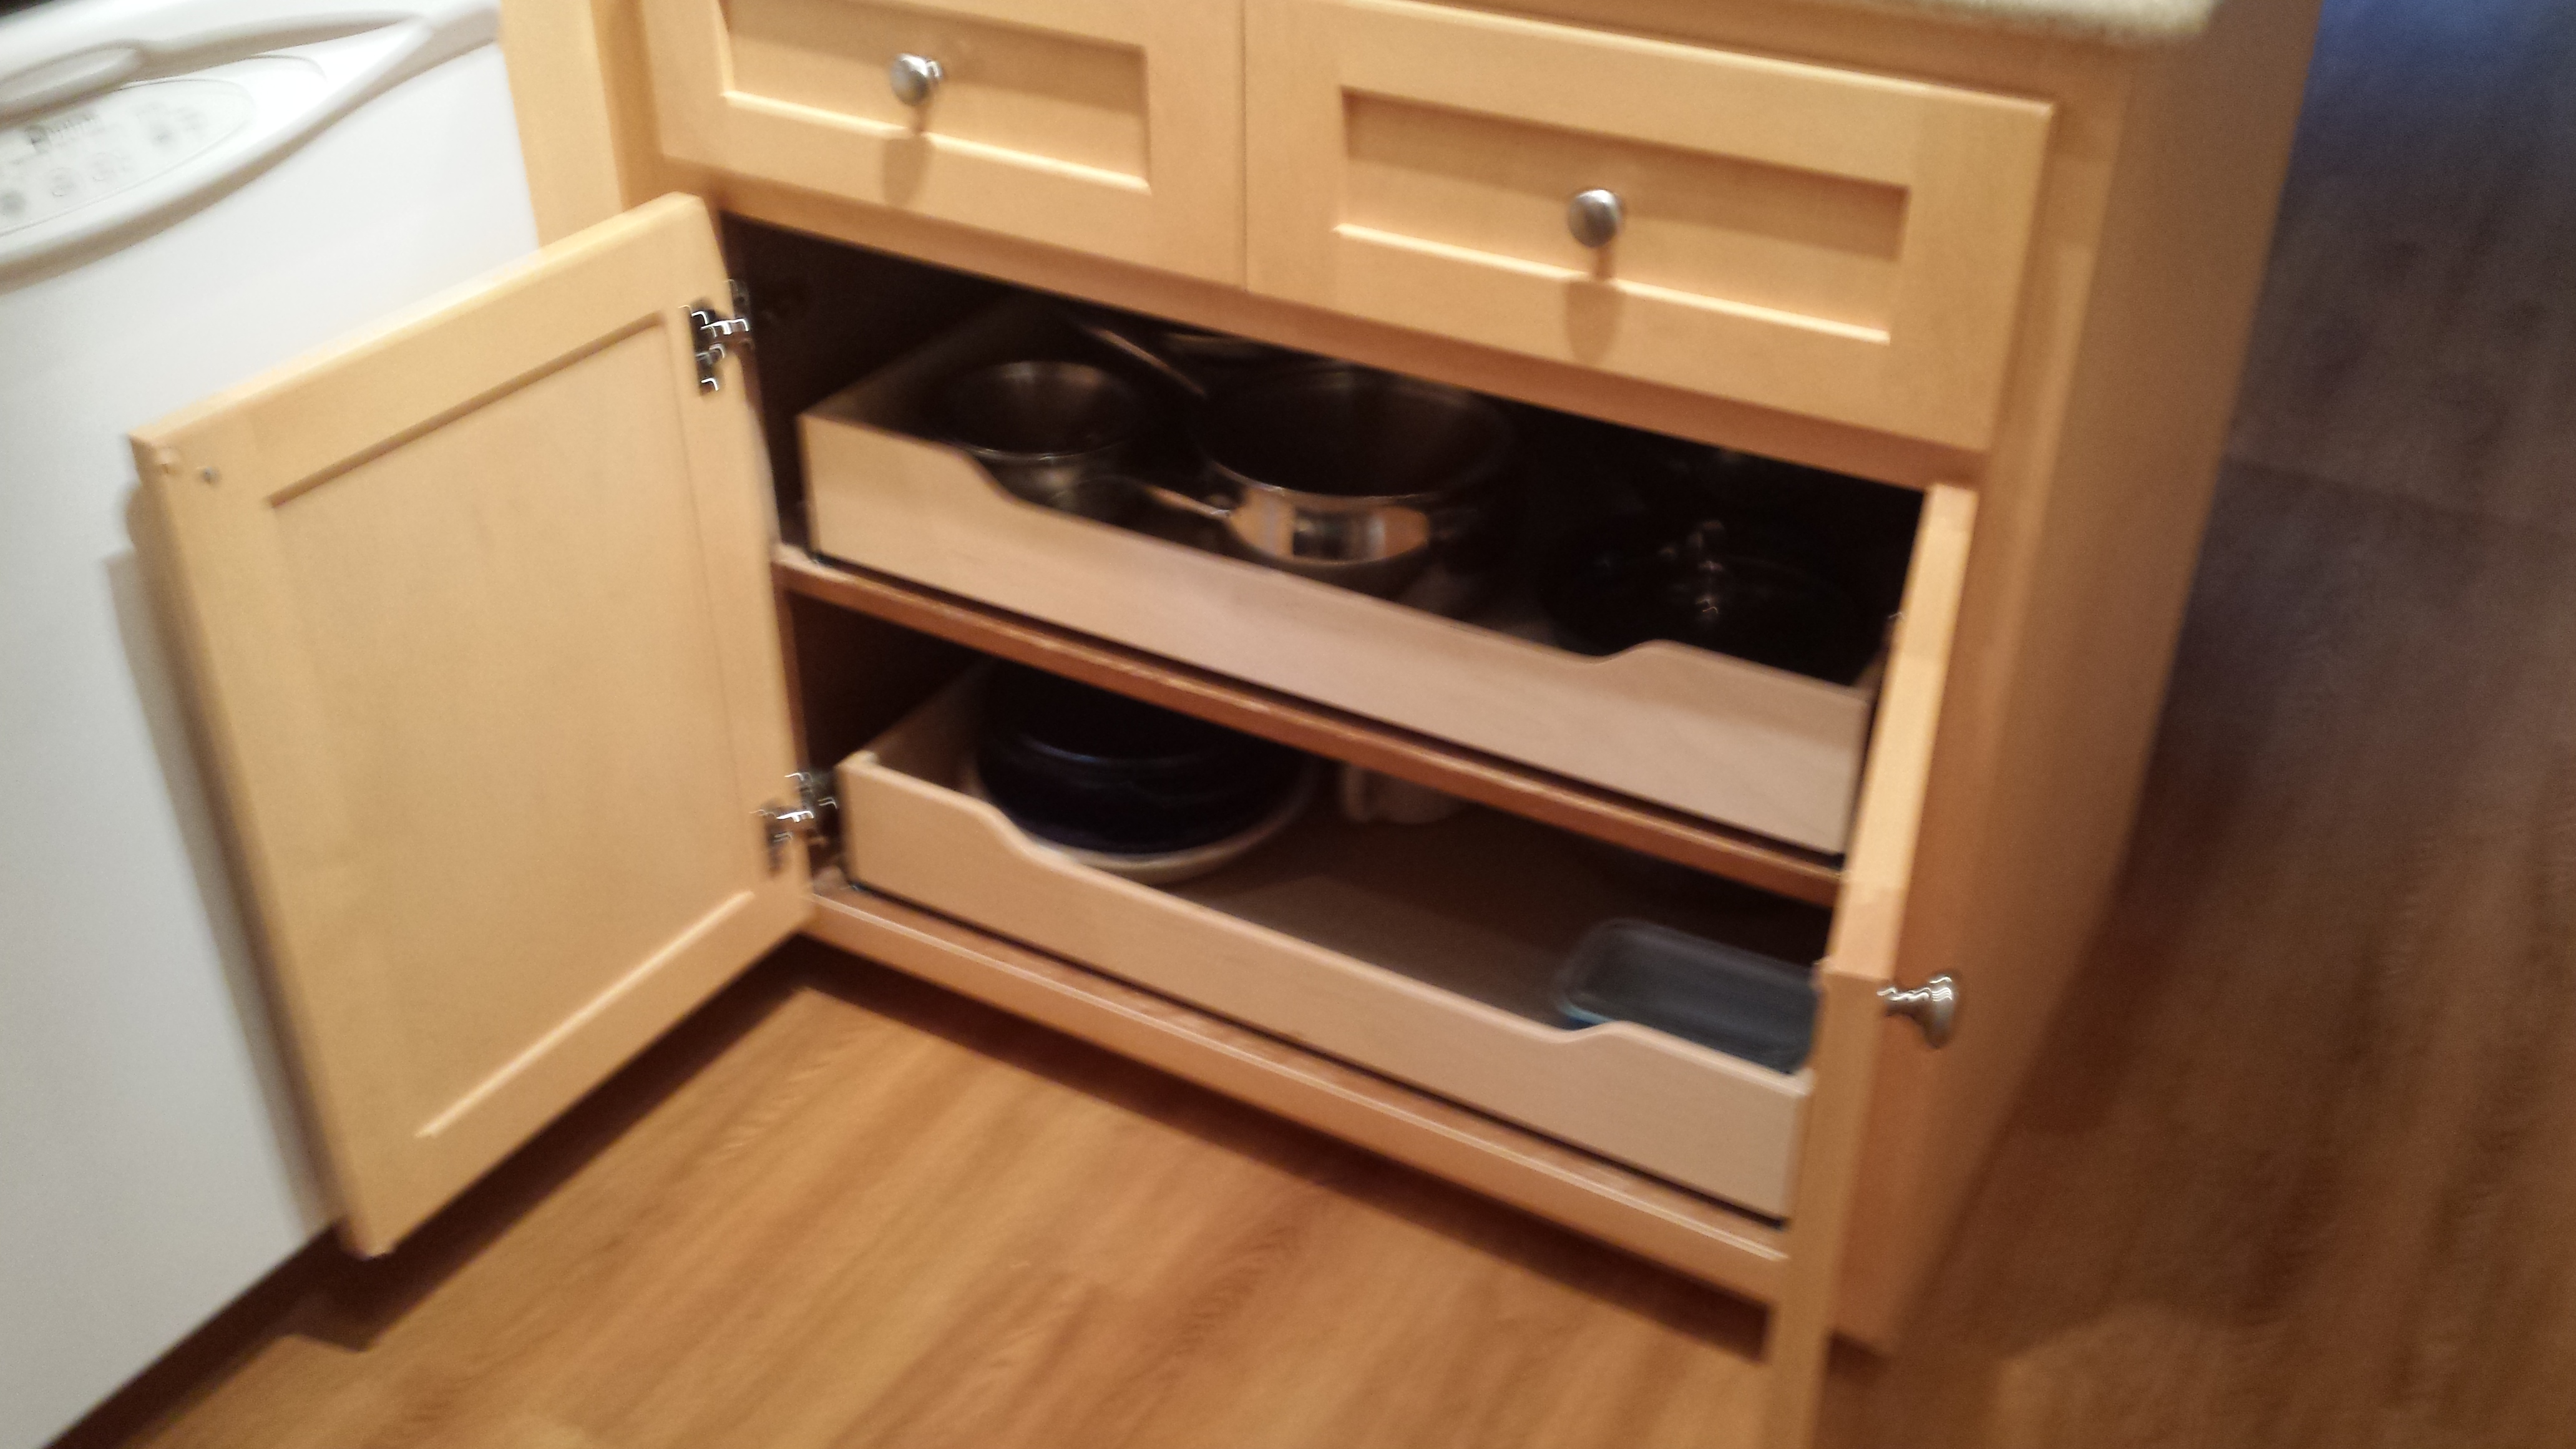 Pull out shelves shelving ta a seattle federal way gig harbor